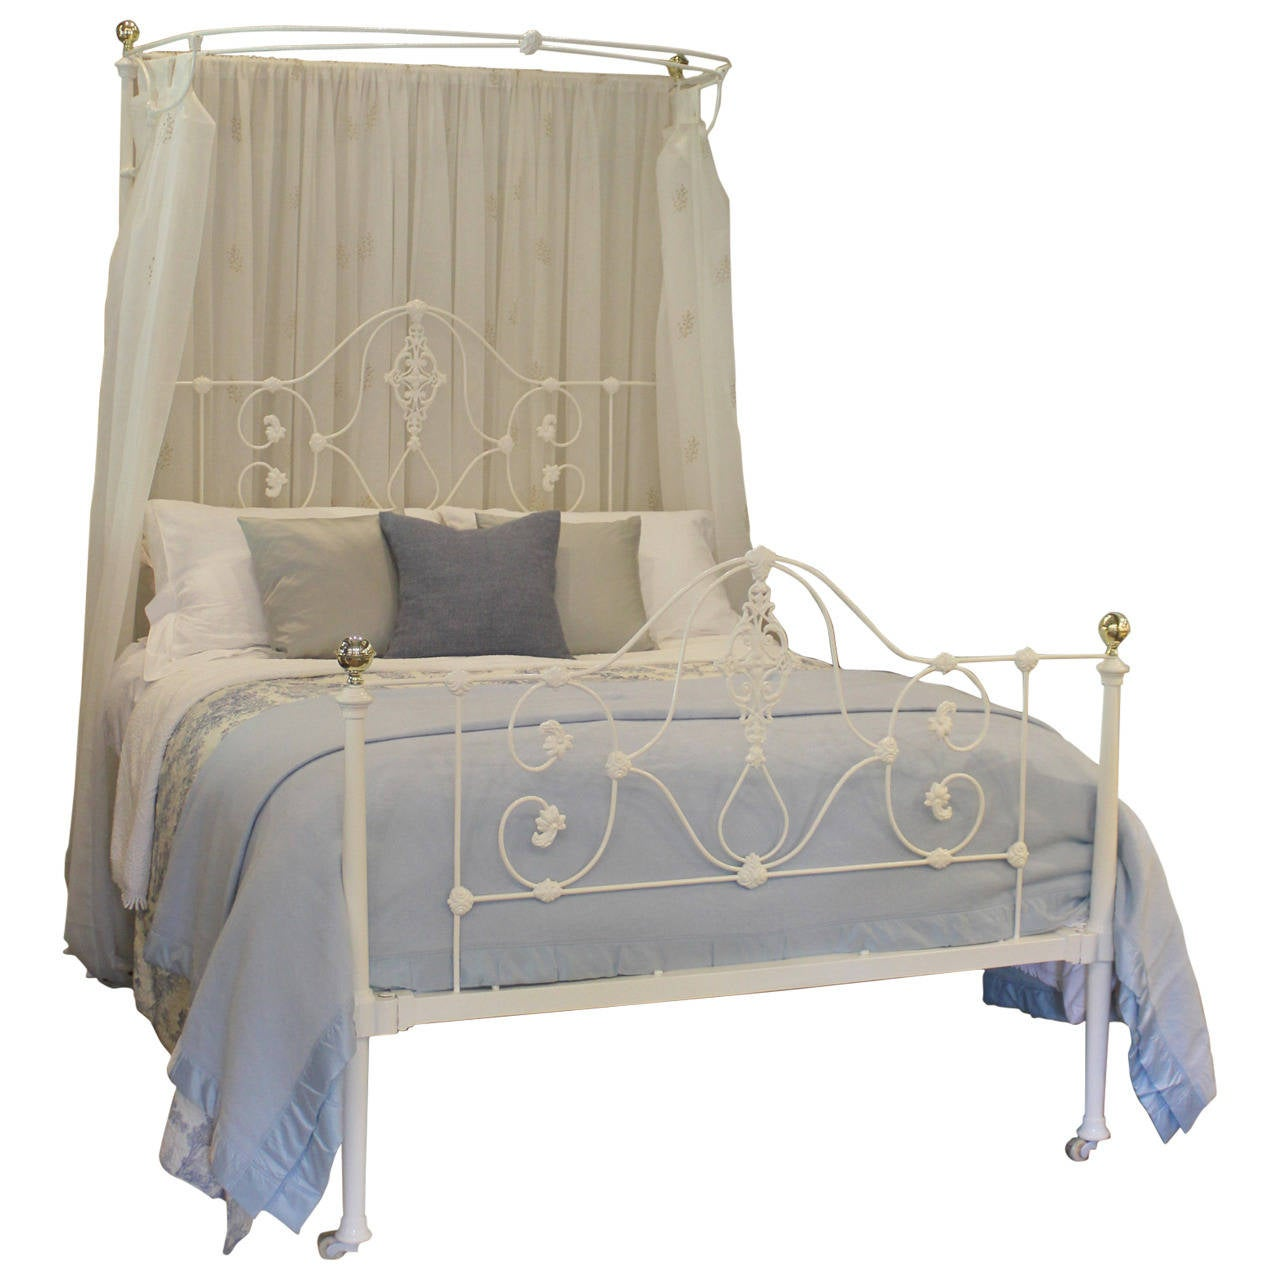 Cast Iron Canopy Beds Wrought Iron Bed Idea With Broken